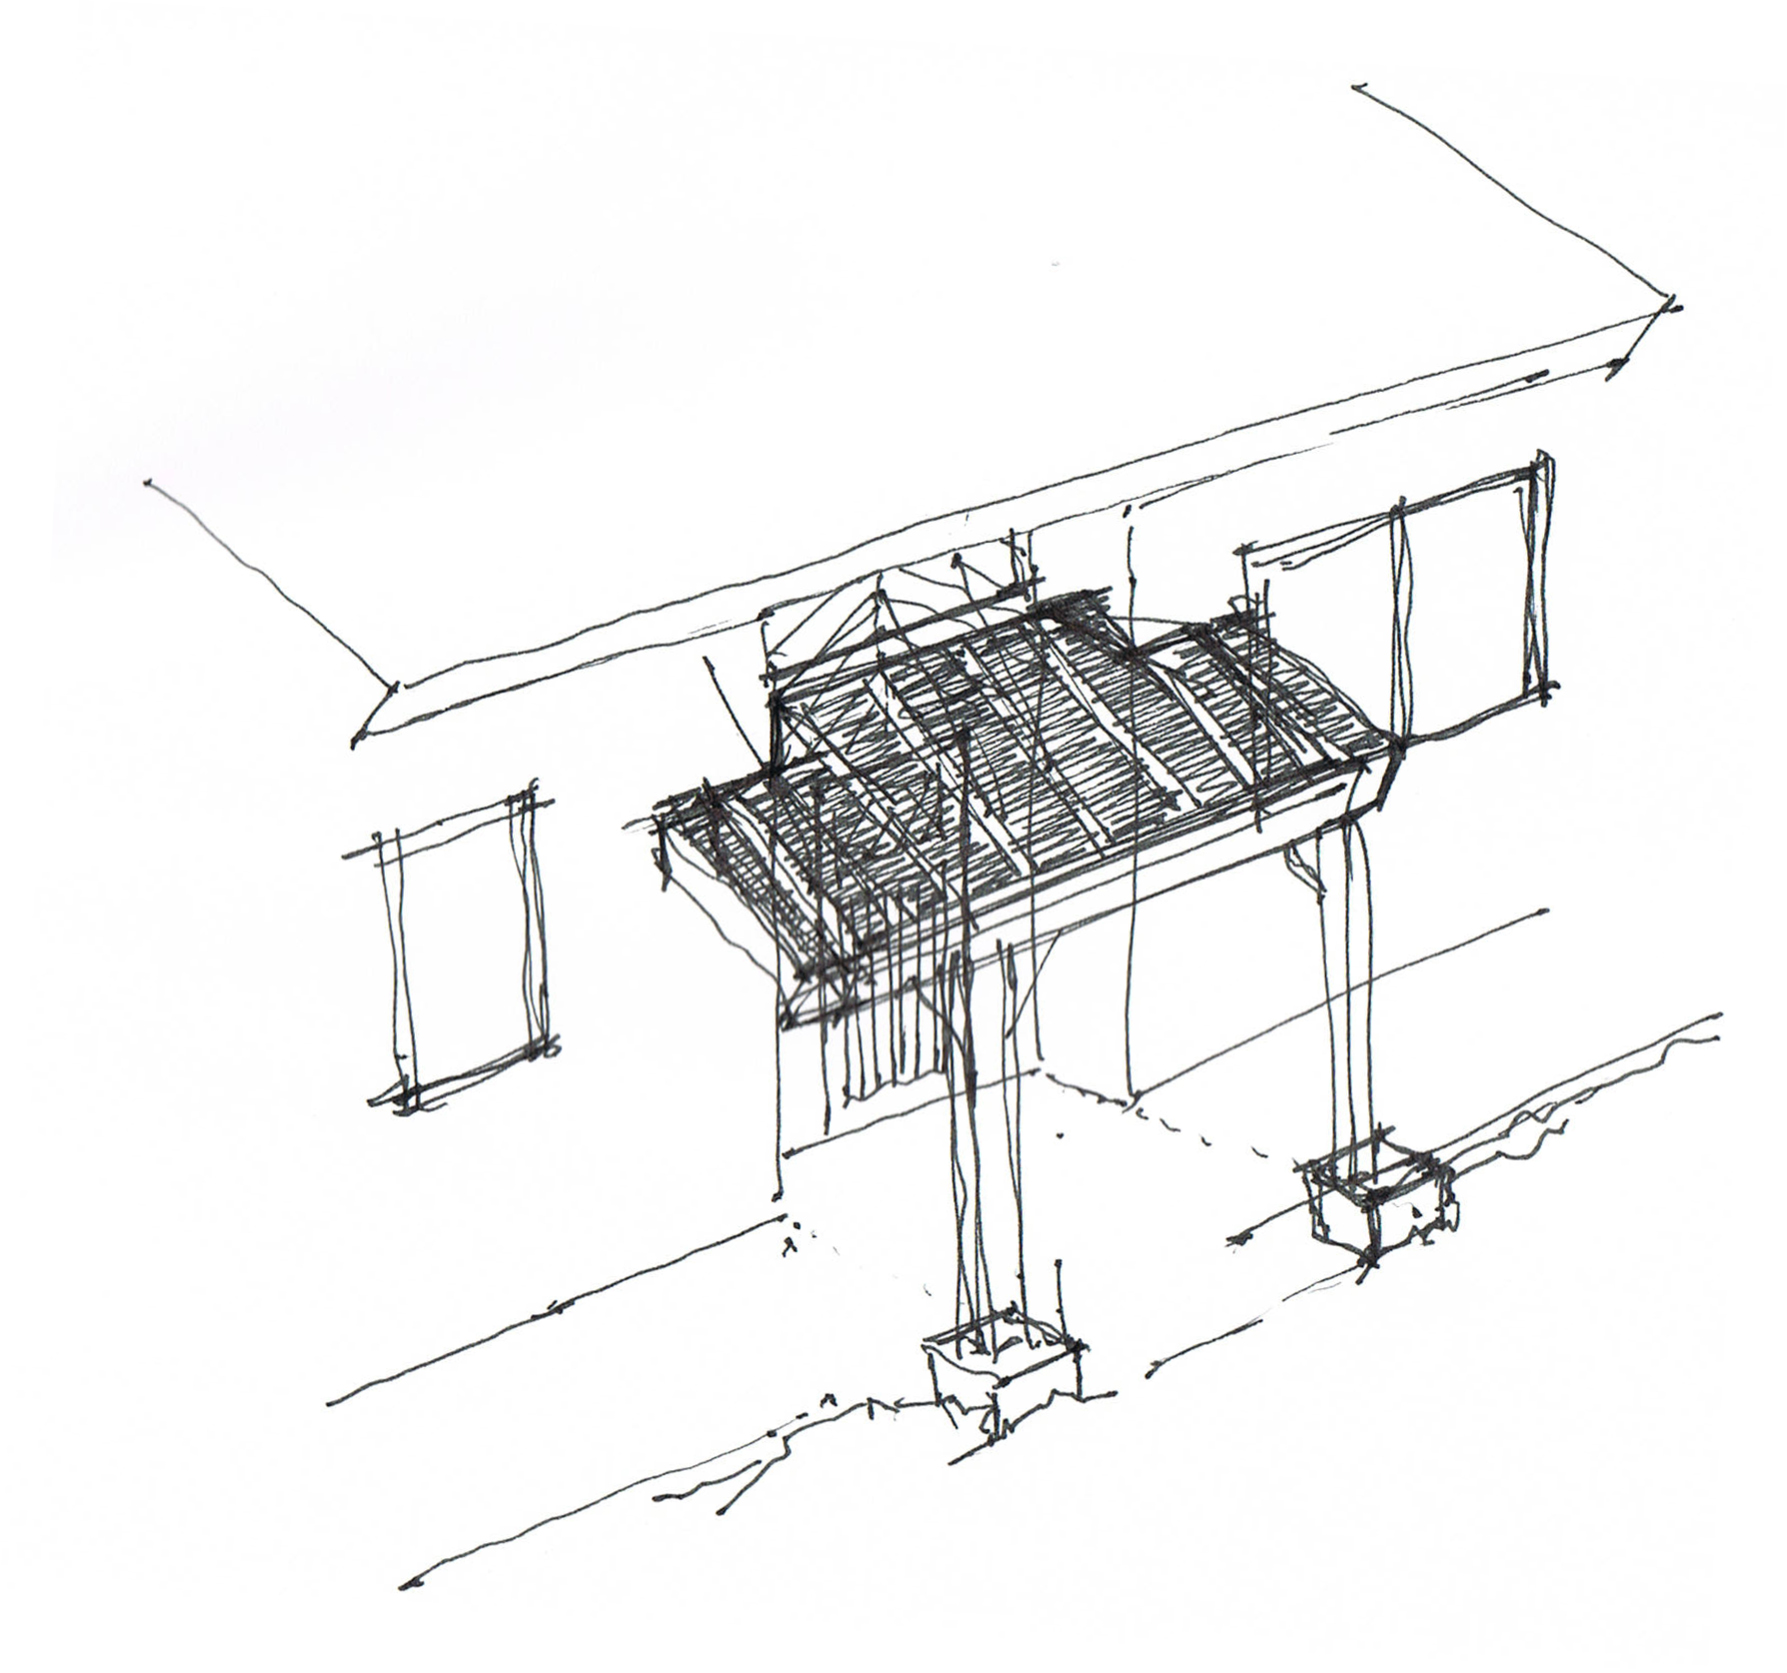 The isometric view